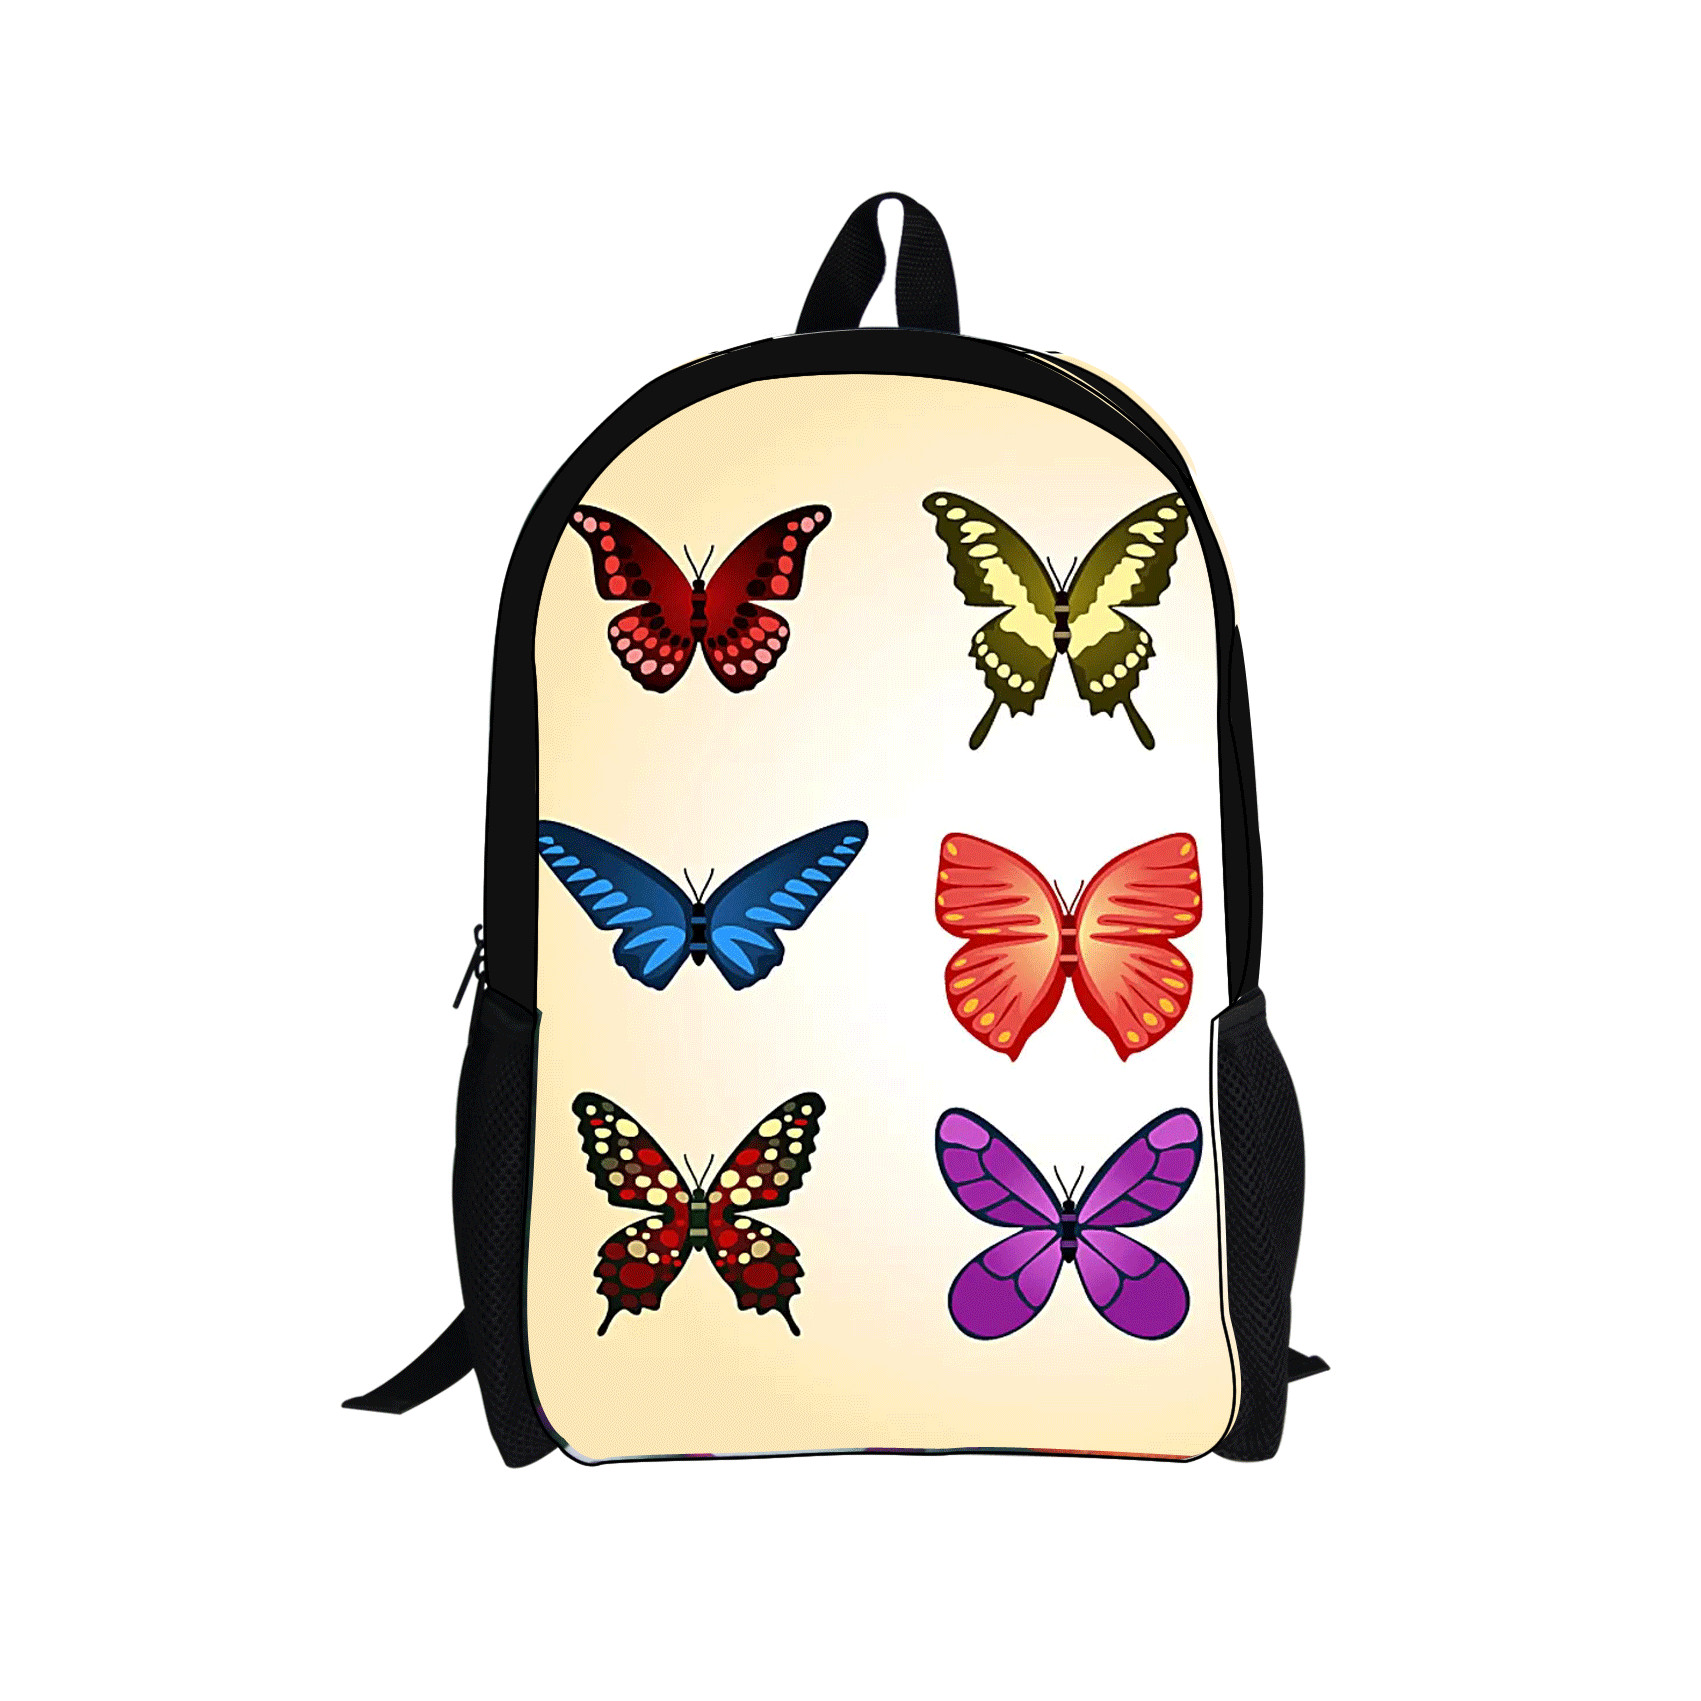 butterfly vintage backpack floral school bags girl women kids mochilas bookbags